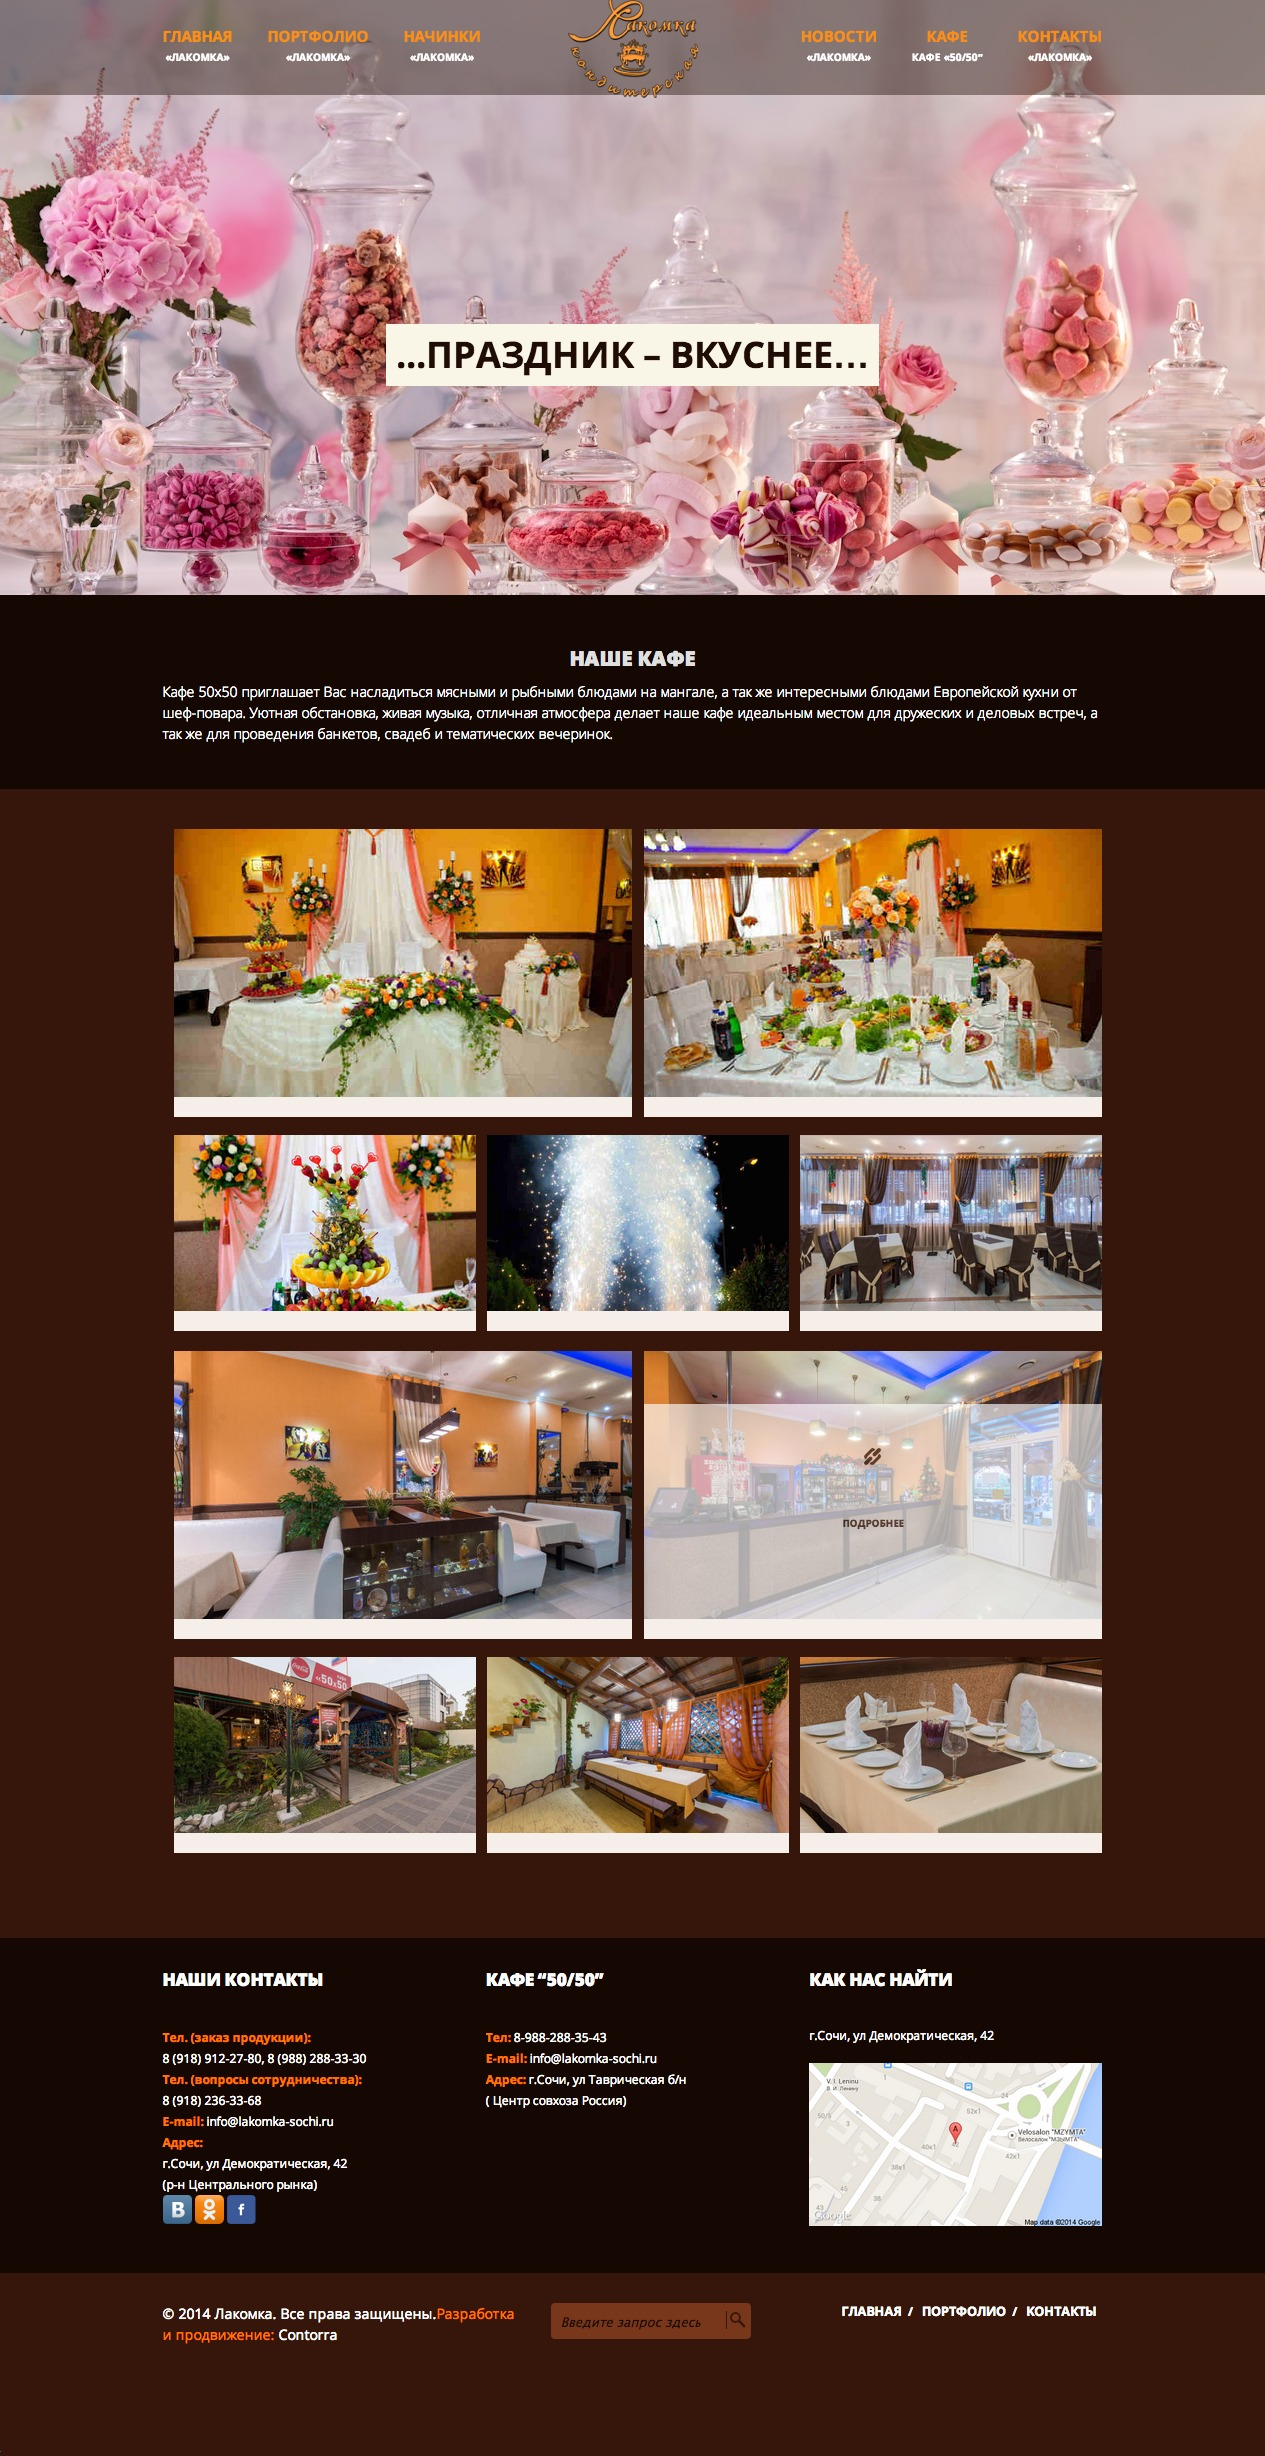 Lakomka website: 50/50 cafe section